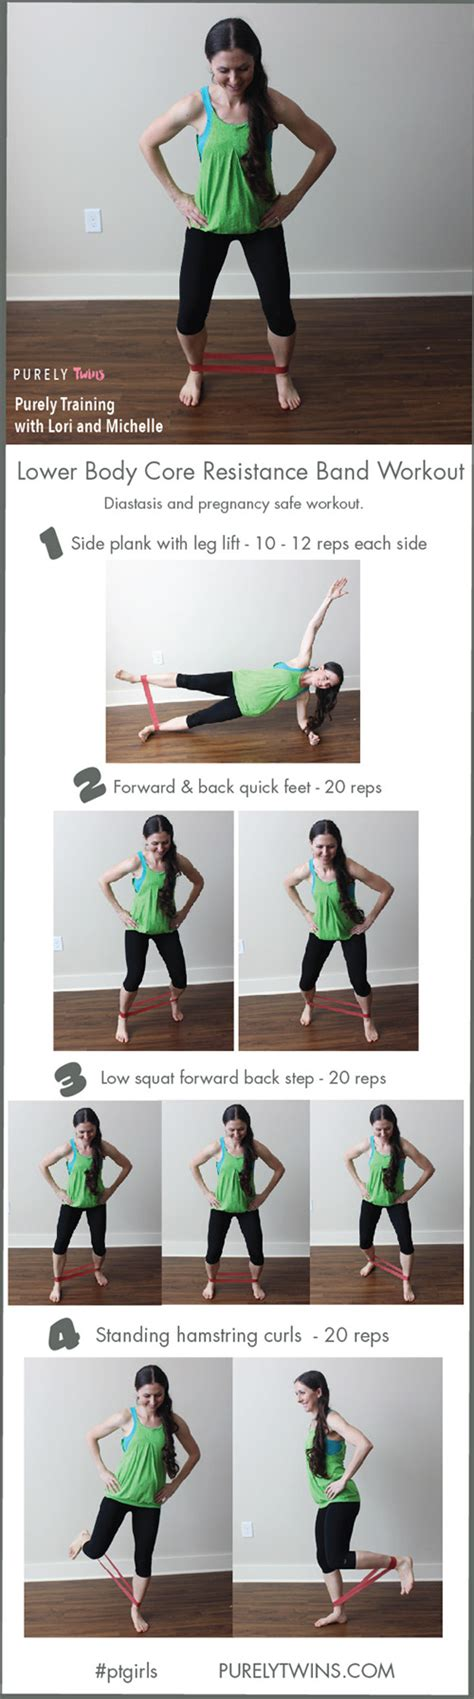 resistance band workout 2 diastasis and pregnancy workout